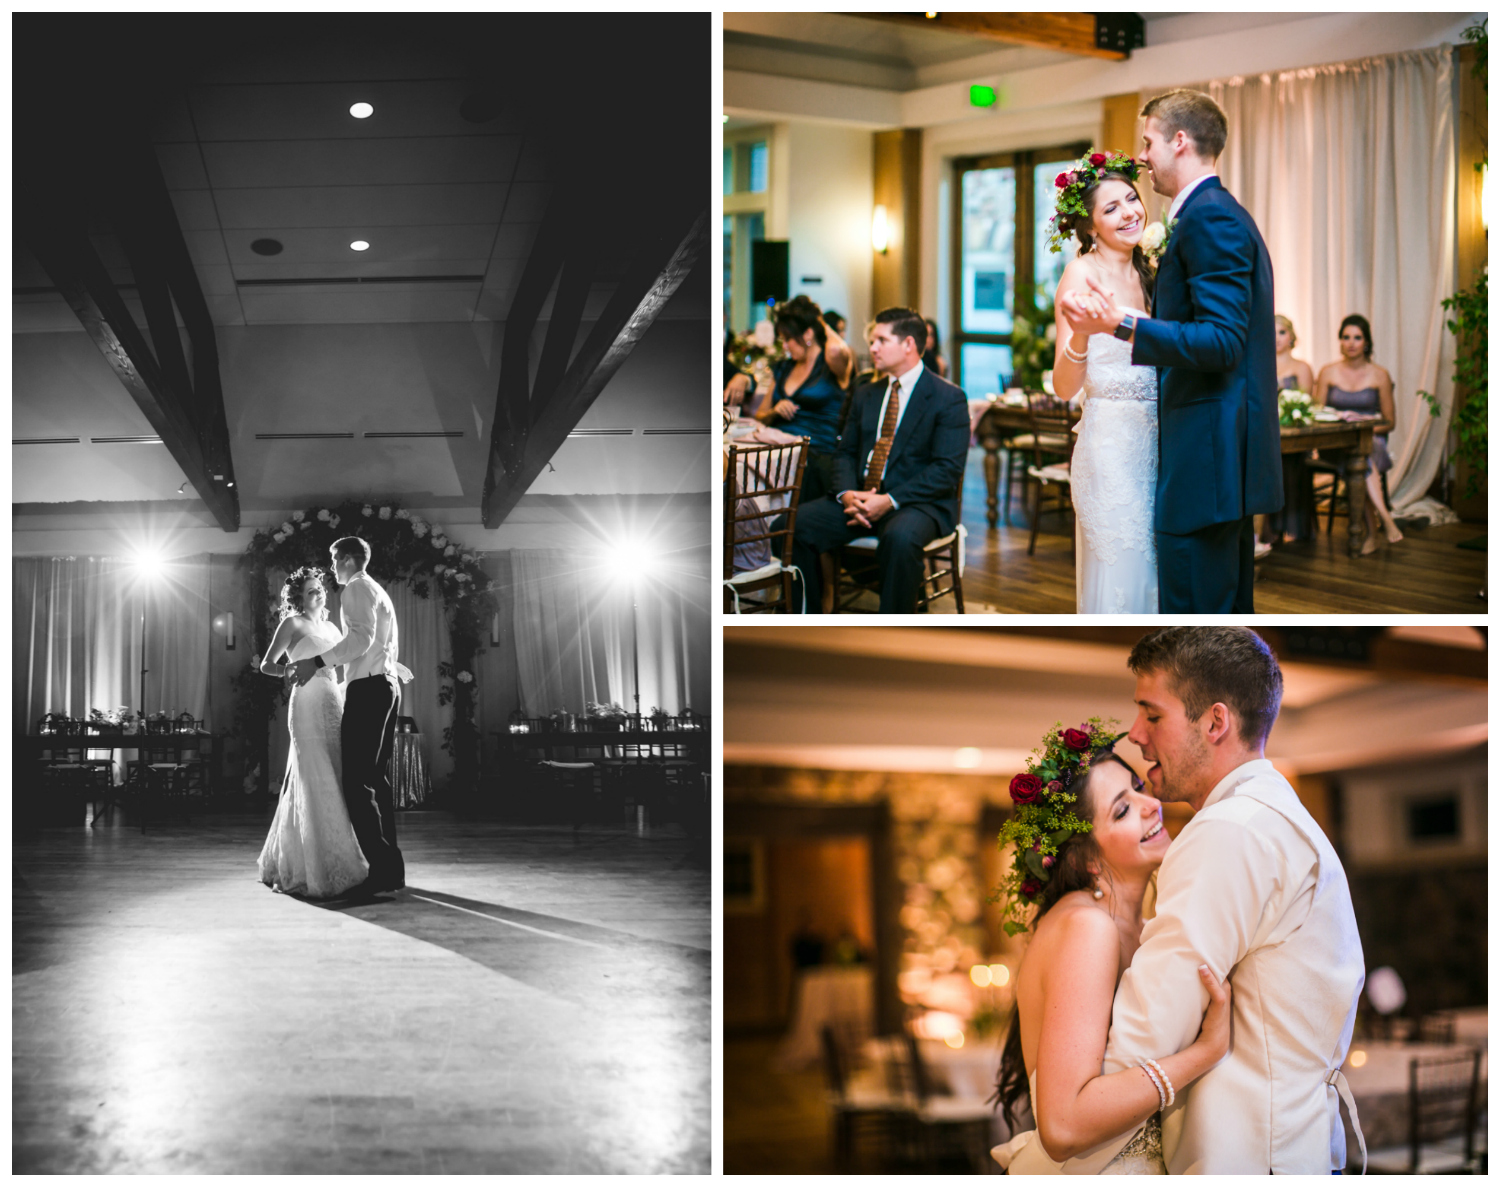 Bride and groom first dance at Highlands Ranch Mansion.    hotographed by JMGant Photography, Denver Colorado wedding photographer.